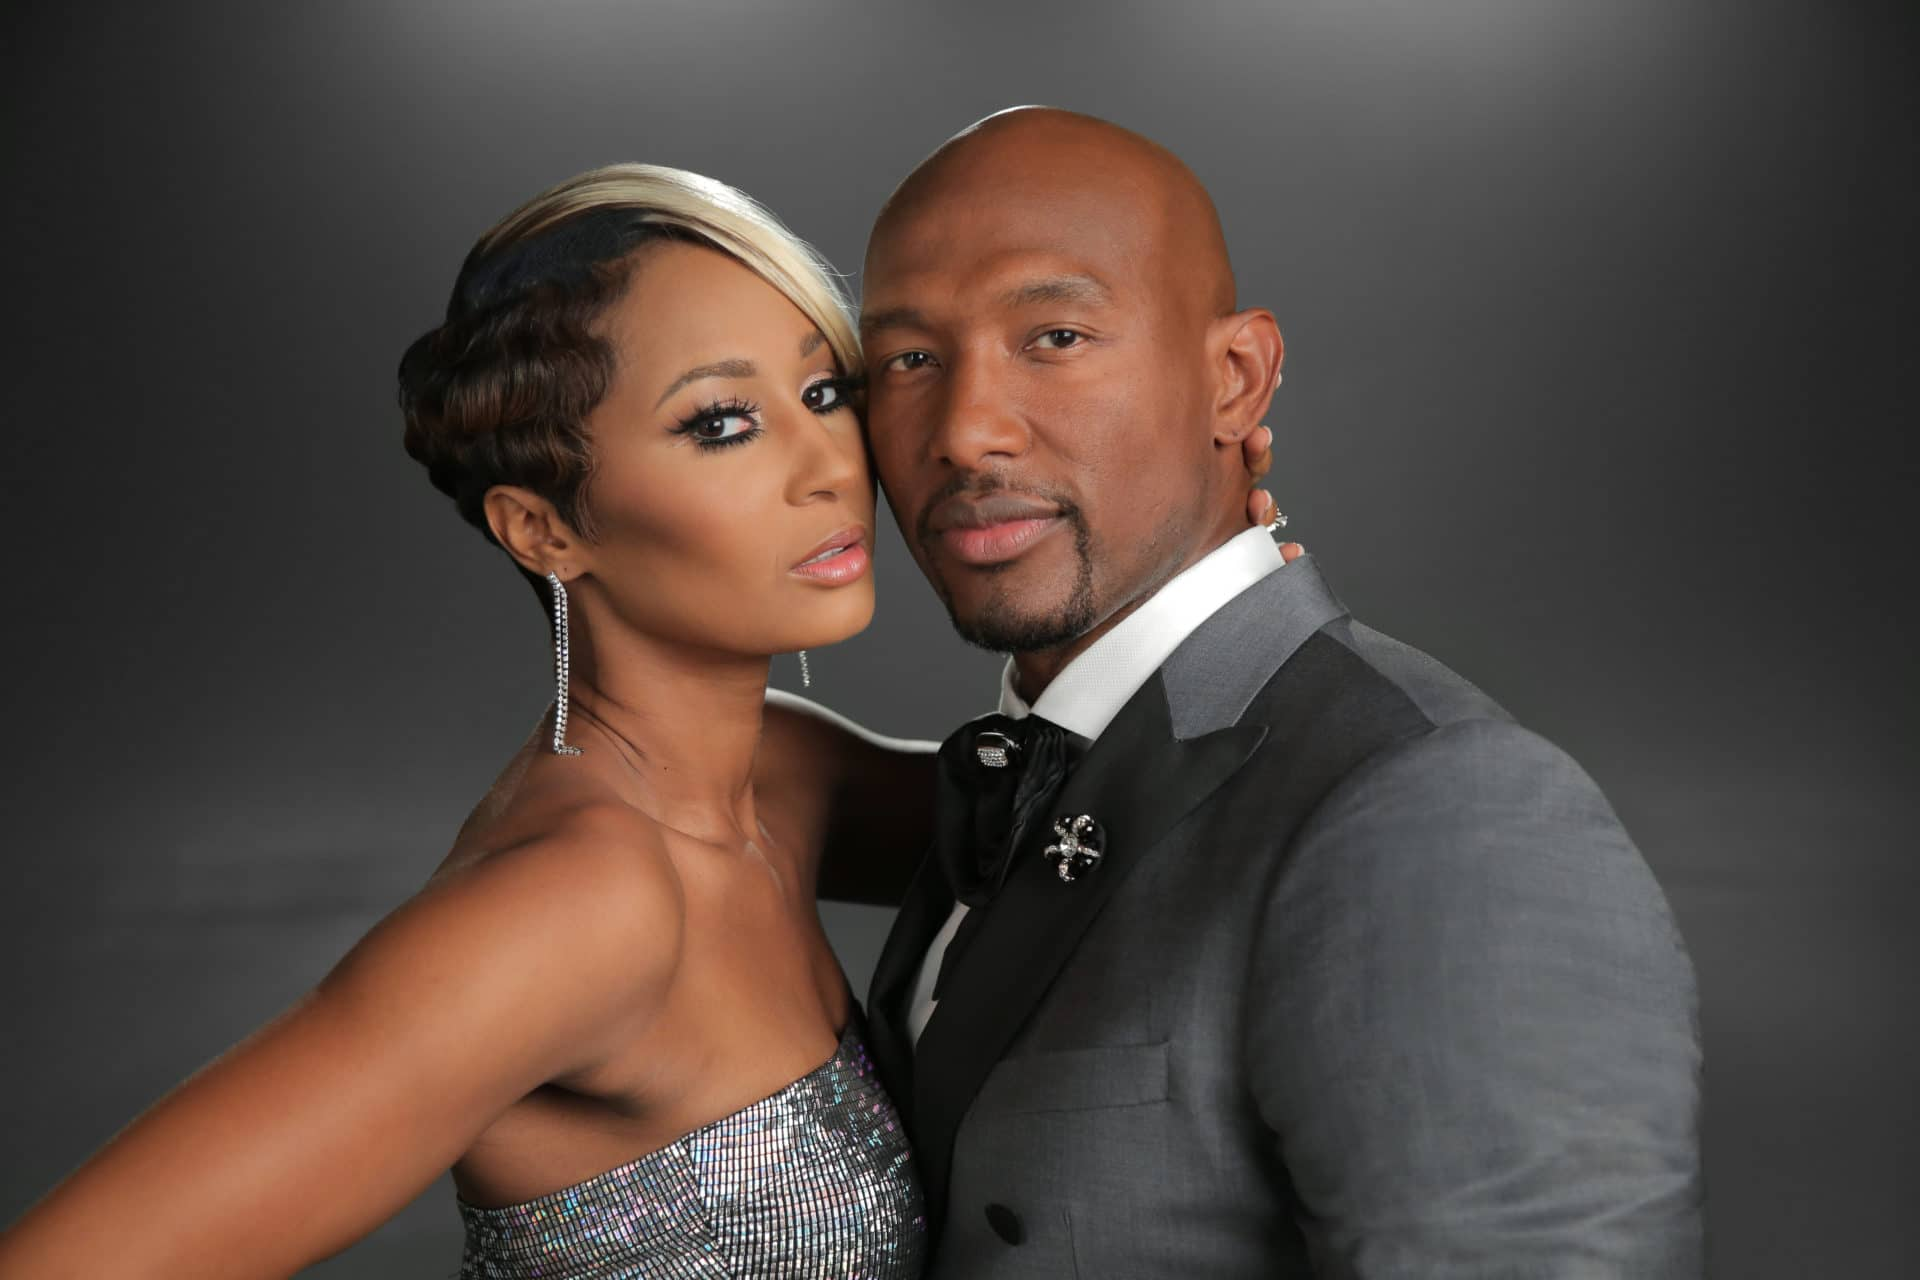 Meet The Couples Attempting To Mix Business With Pleasure On Own S New Series Love Marriage Huntsville Essence